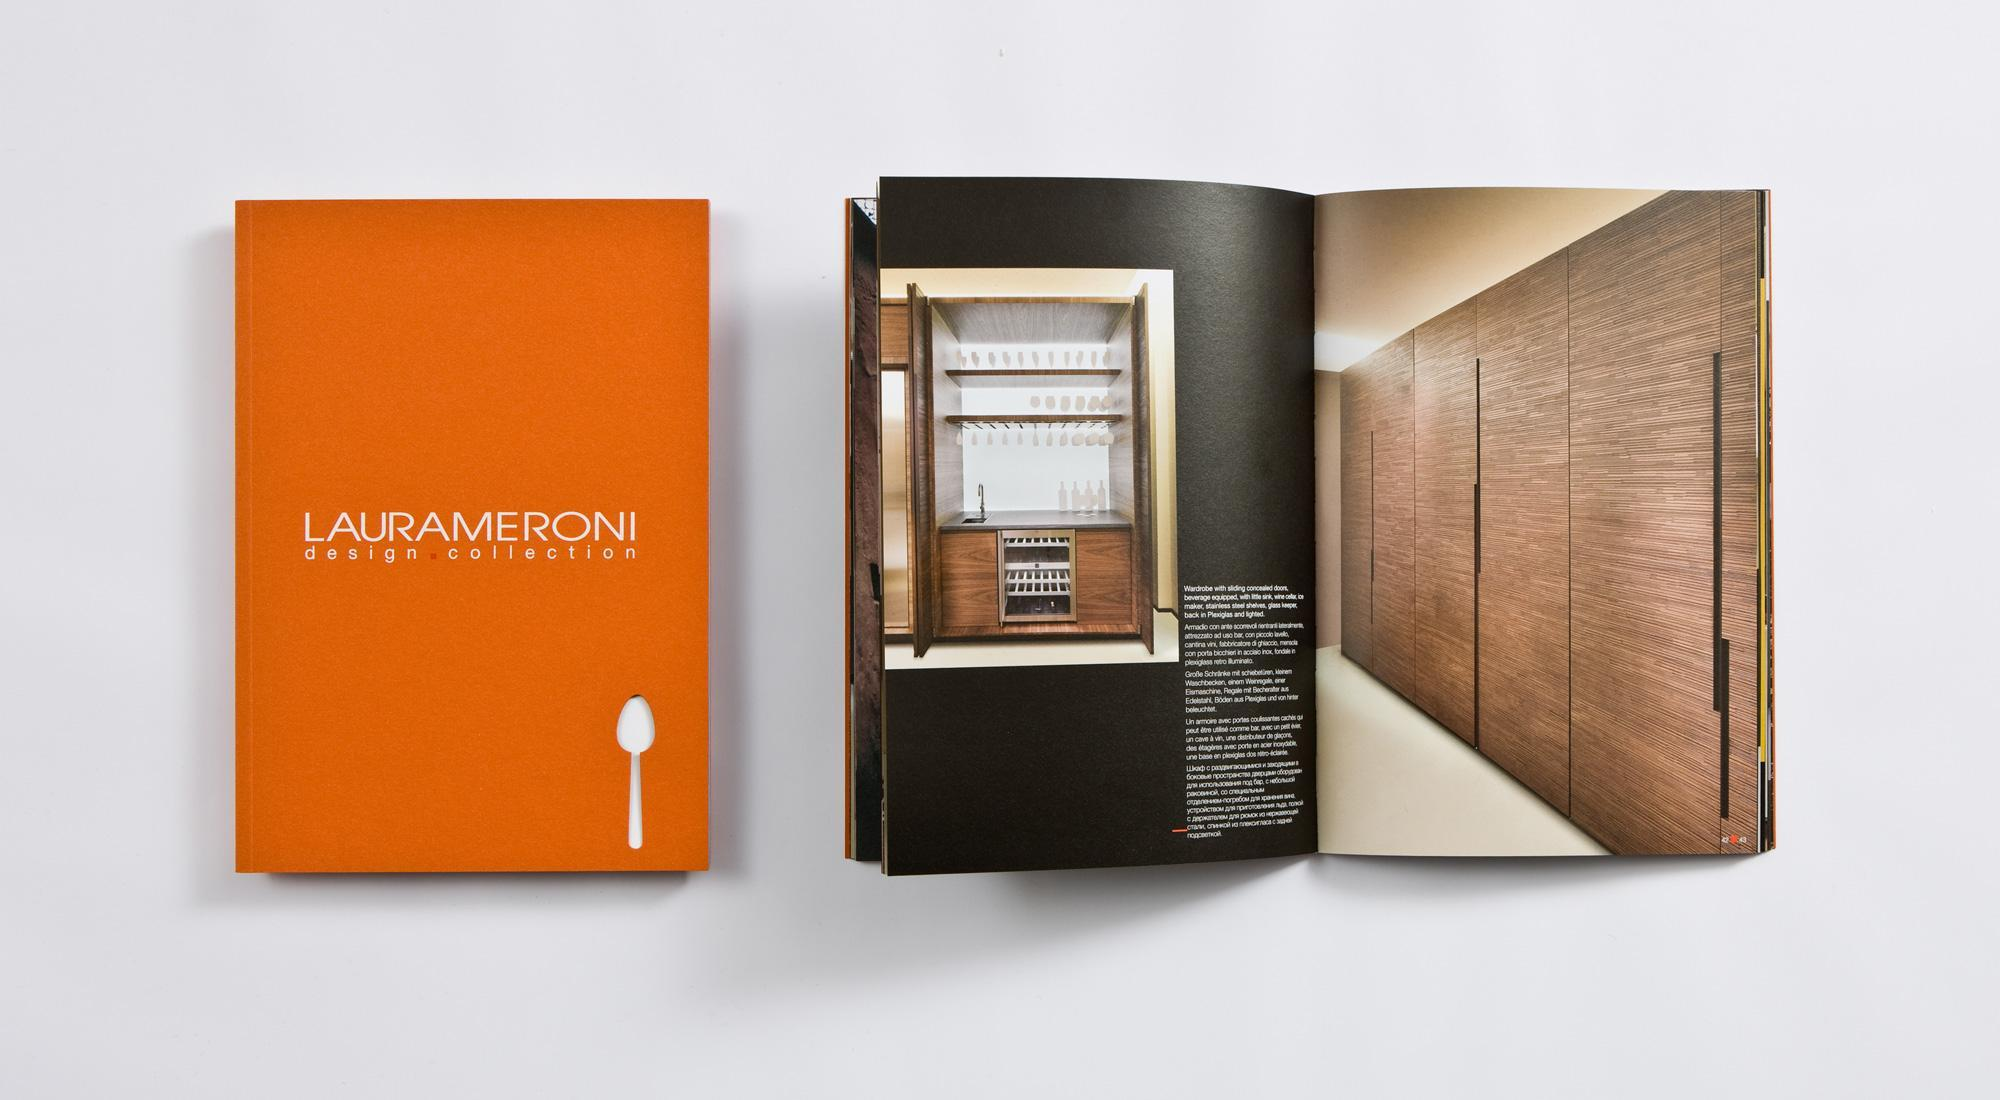 laurameroni luxury bespoke kitchen catalogue free download